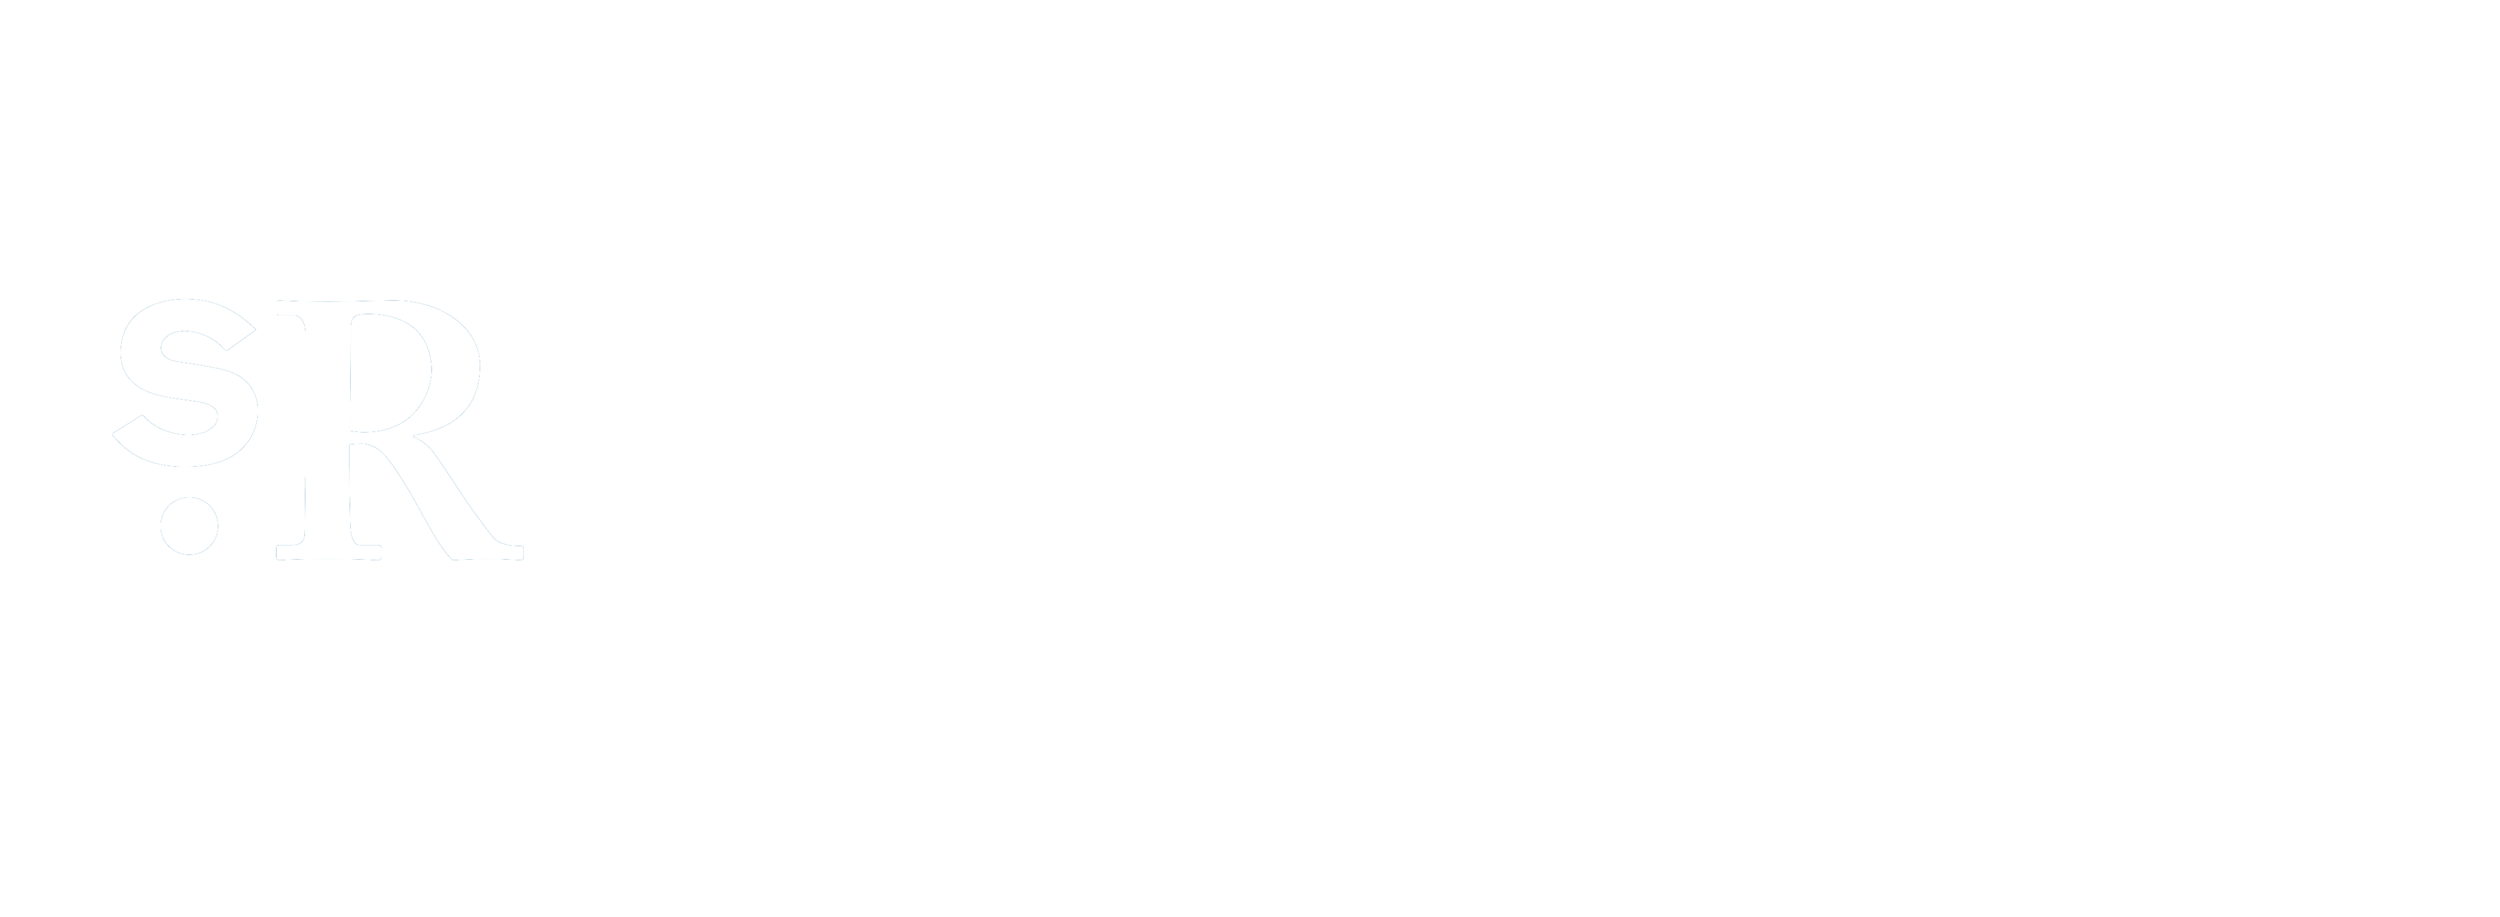 structure research_logo-white.png